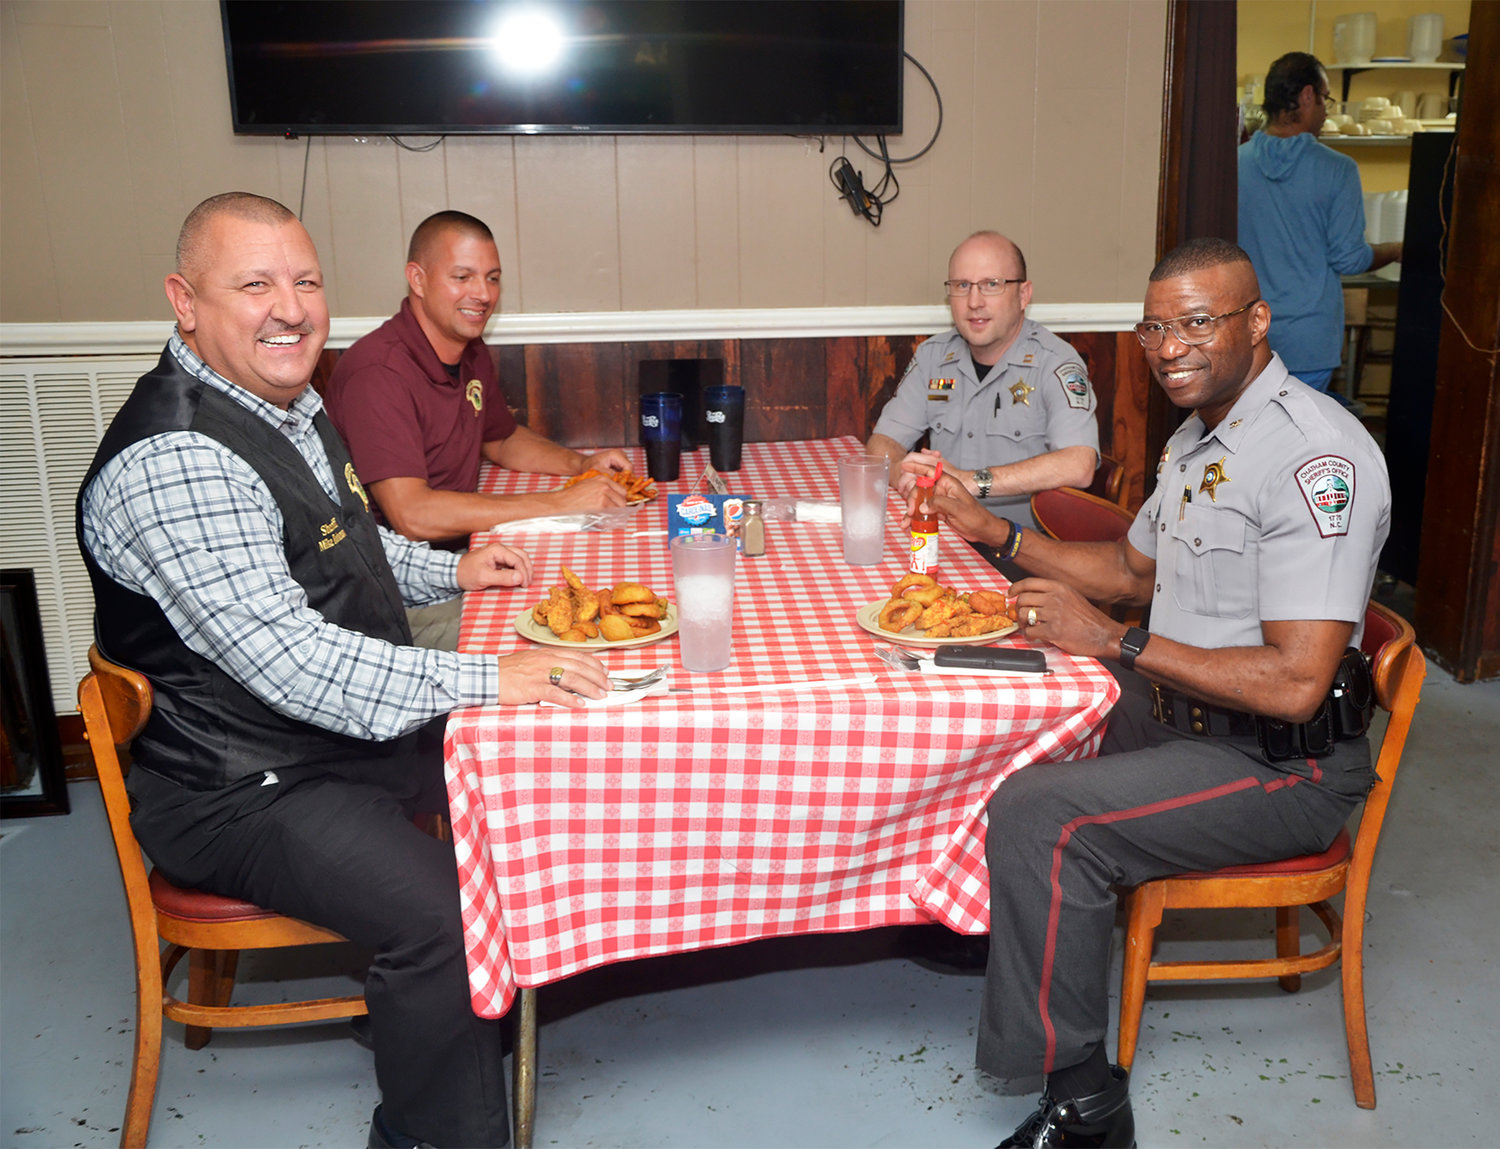 Chatham County Sheriff Mike Roberson, Captain Steve Maynor, Captain Chris Cooper and Deputy Chief Charles Gardner enjoy a meal at the Chicken Shack. Roberson is making his feelings clear.